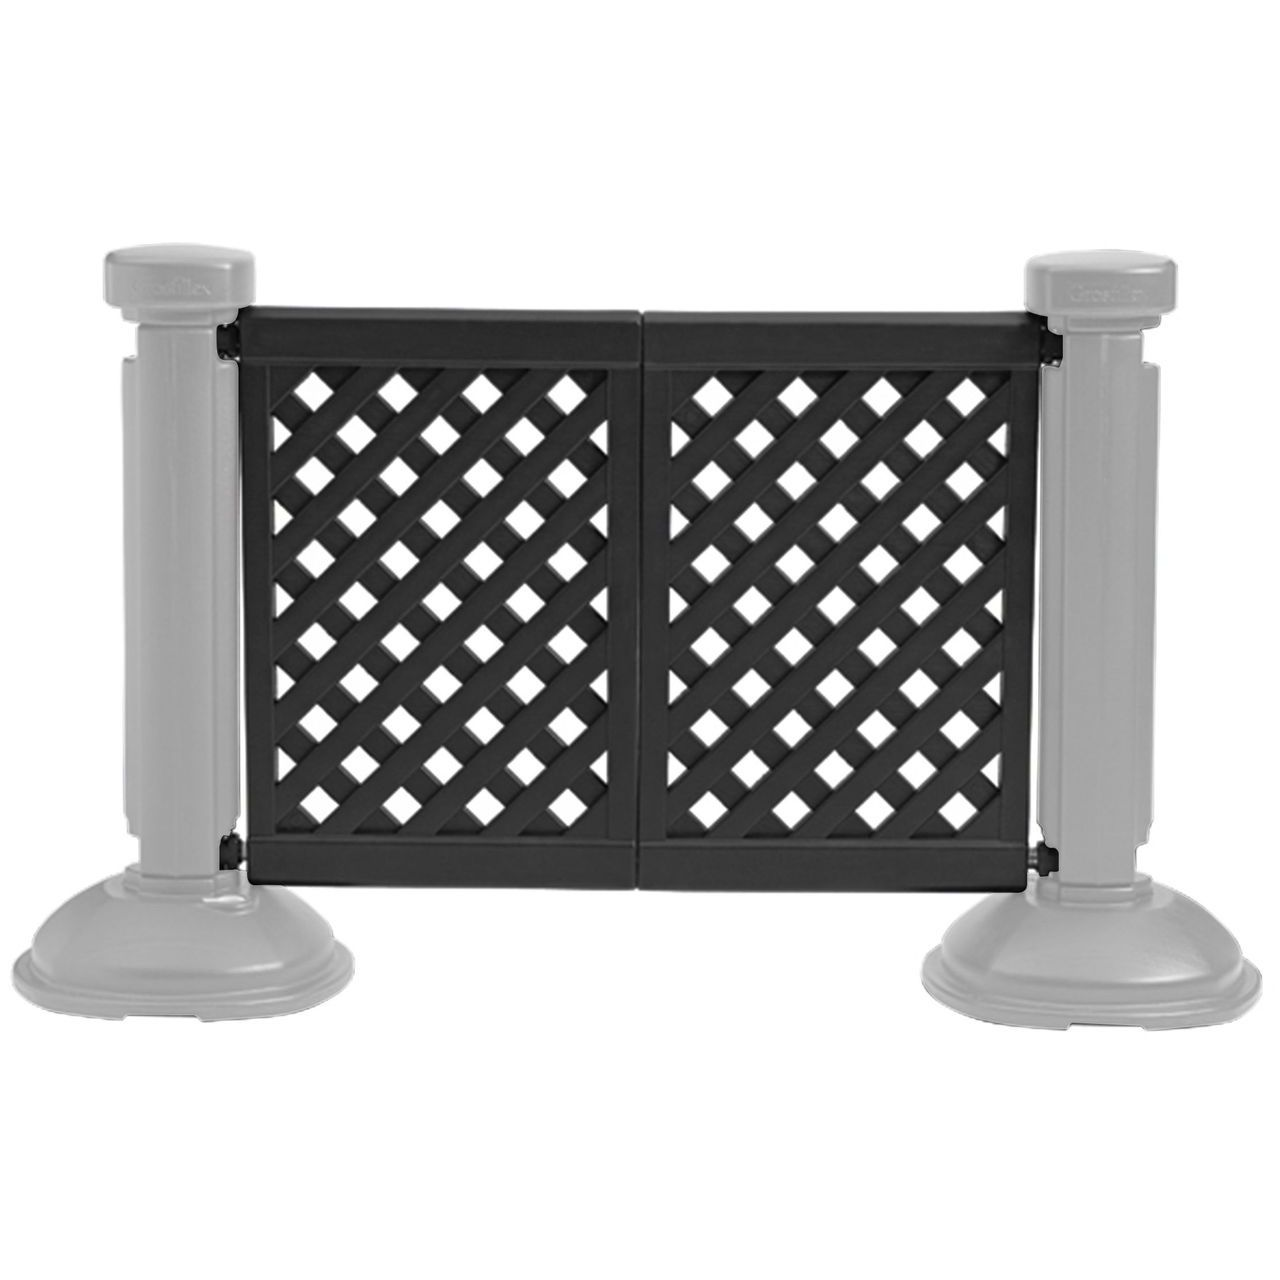 Grosfillex 2-Panel Section of Portable Fencing in Black